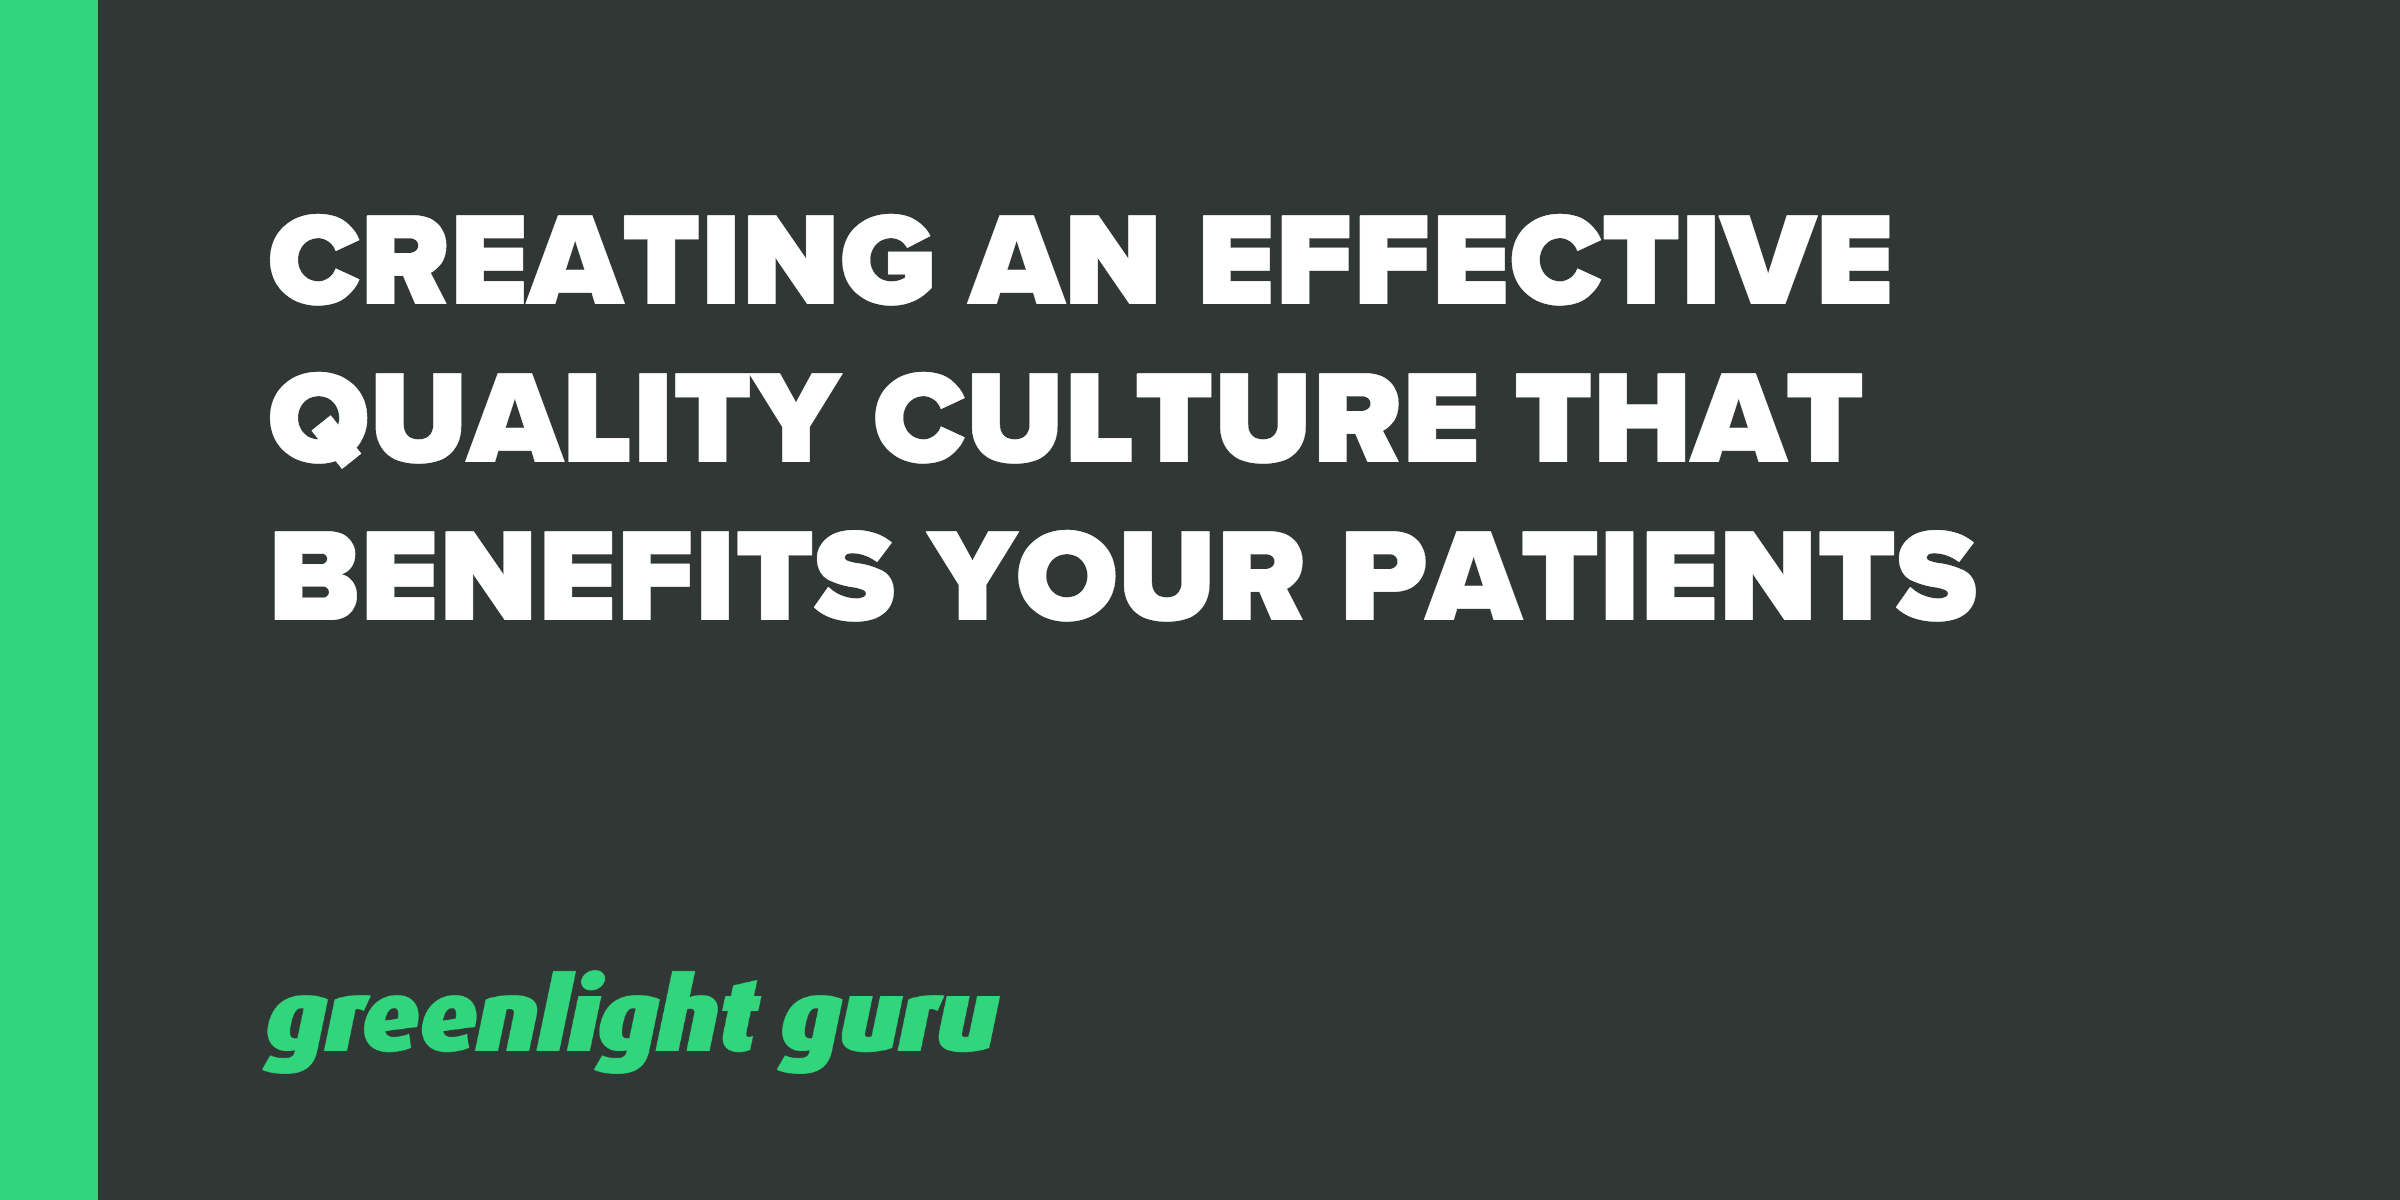 Creating an Effective Quality Culture that Benefits Your Patients - Featured Image